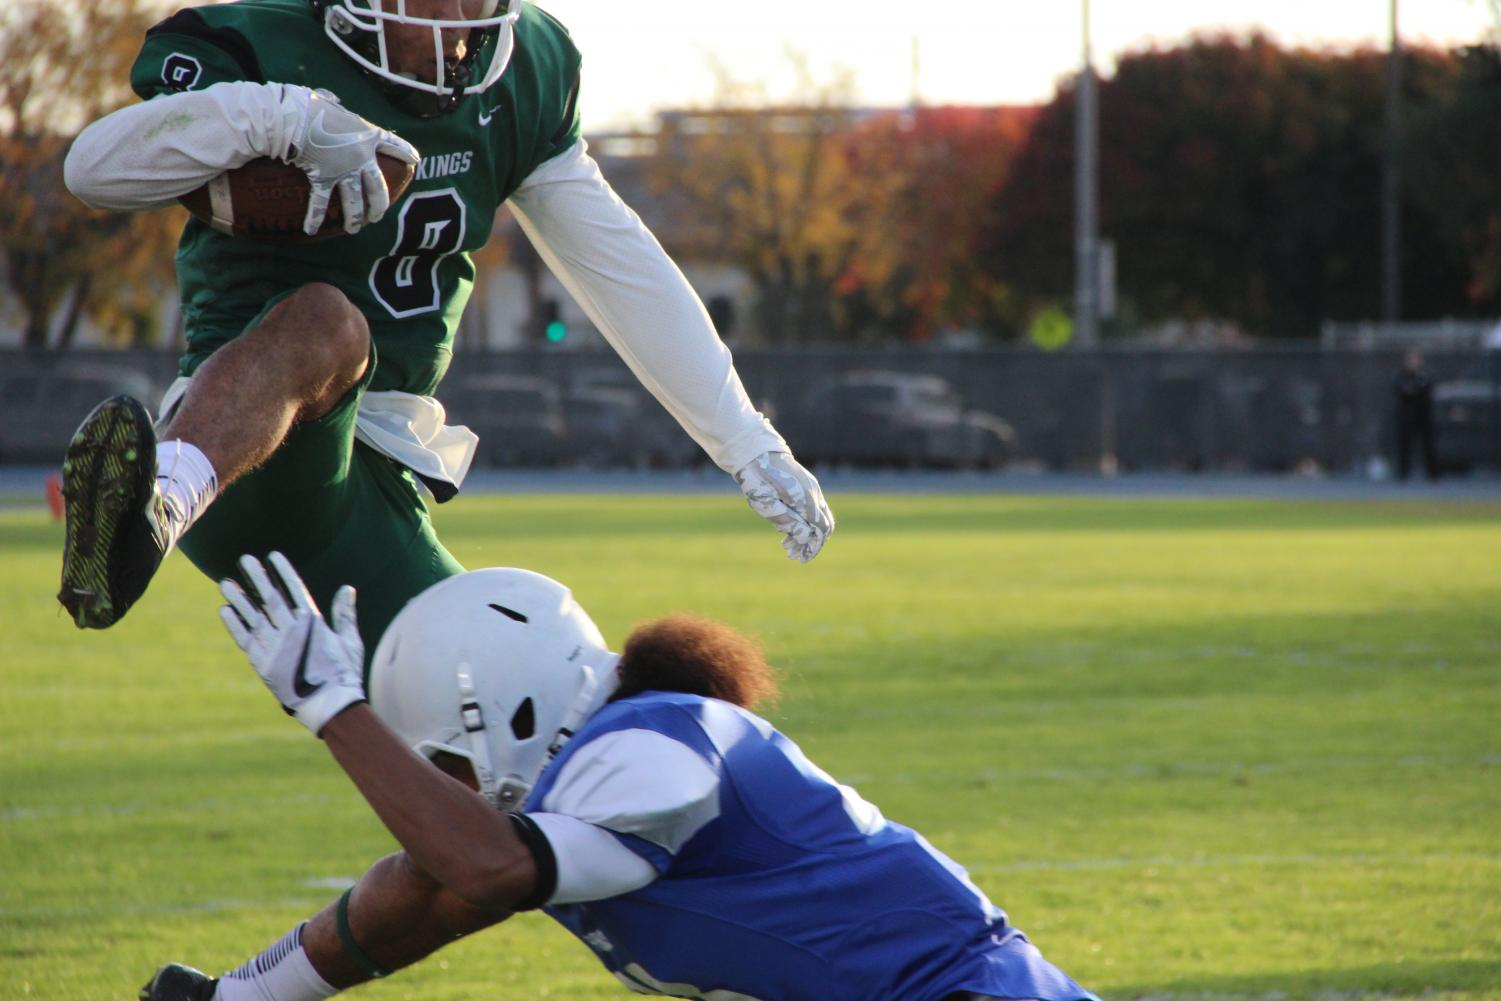 Photo of the night: Wide receiver Cameron Norfleet shows off his athleticism by hurdling over his defender. Norfleet had nine catches for 100 yards in the Gridiron Bowl game at Modesto Junior College in Modesto, California on November 18, 2017. | Photo by Aaron Tolentino